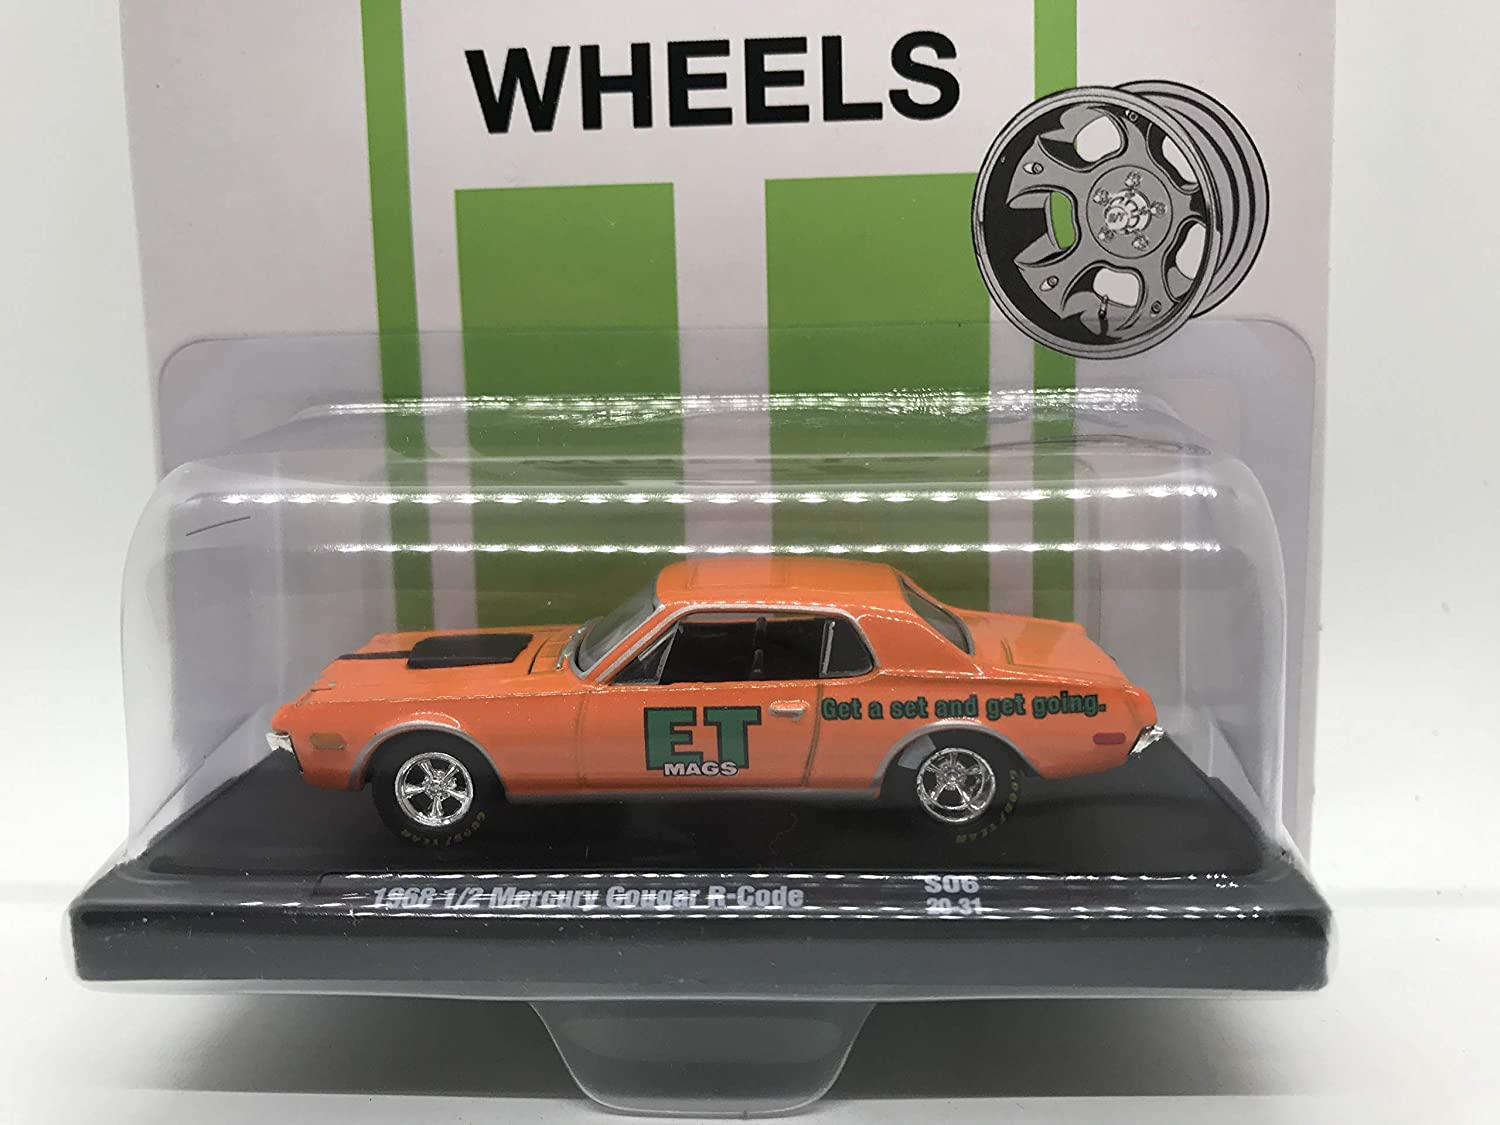 M2 Machines by M2 Collectible E-T Wheels 1968 1/2 Mercury Cougar R-Code 1:64 Scale S06 20-31 Orange Details Like NO Other! 1 of 2333